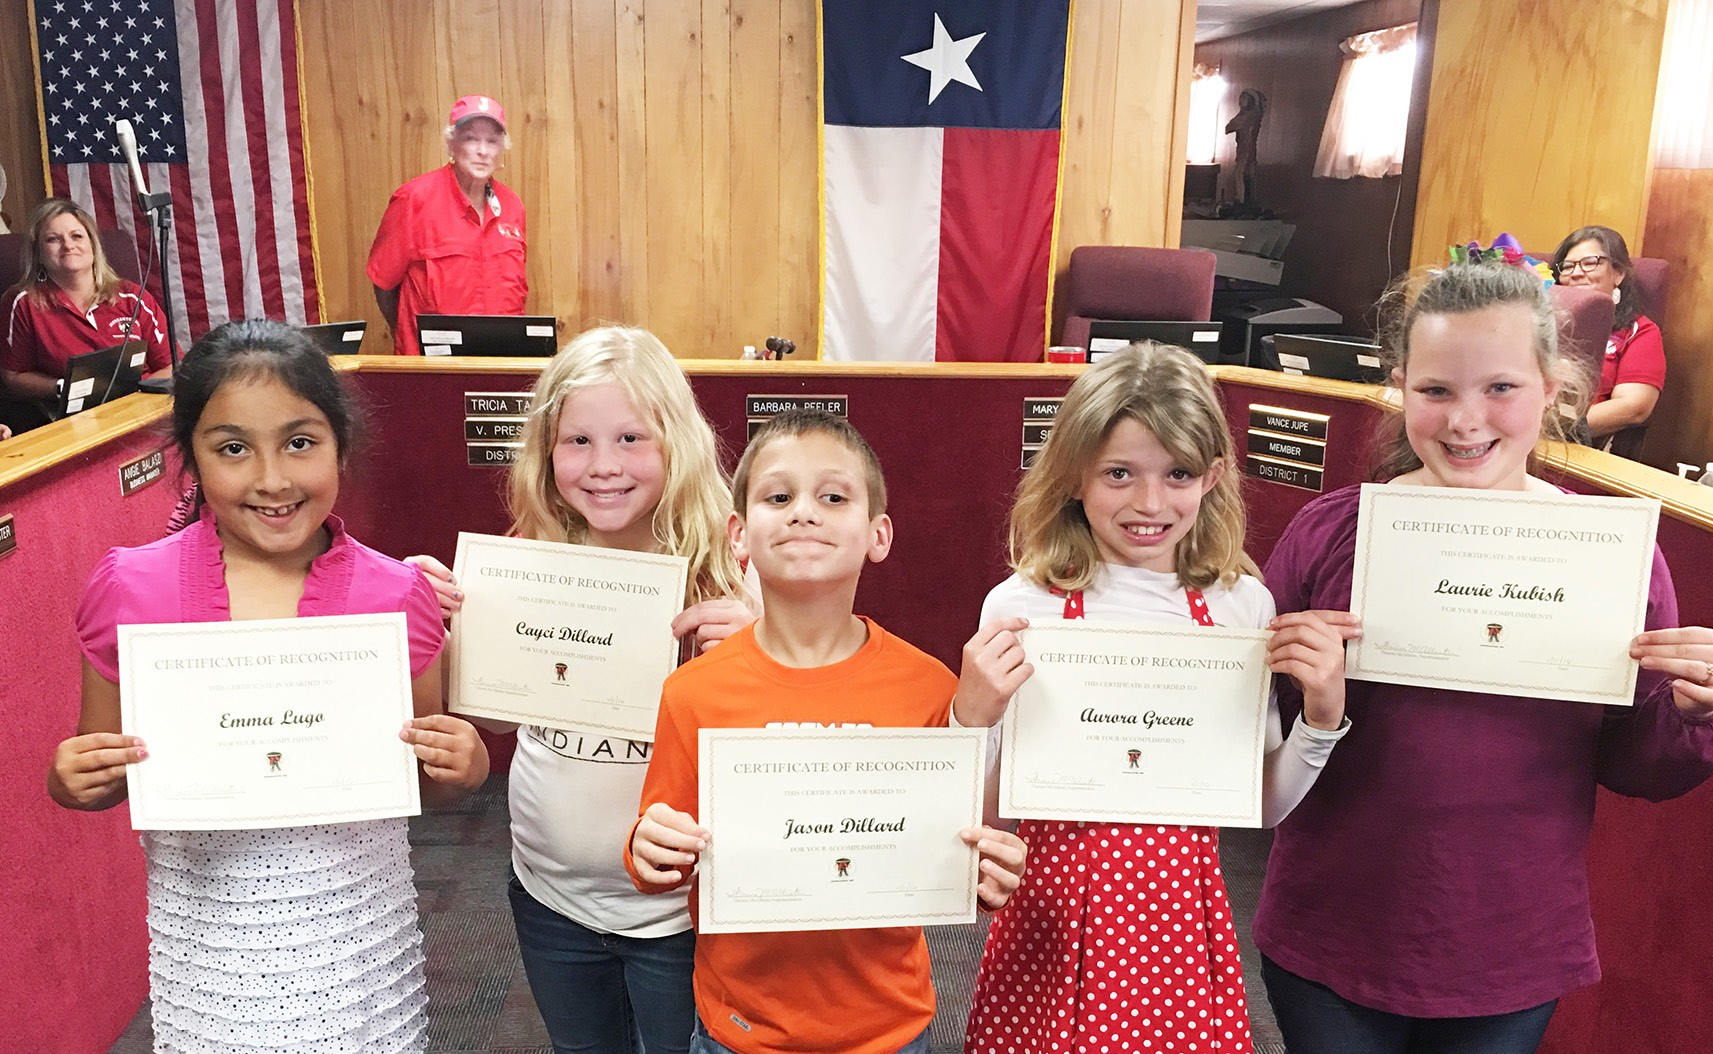 The Jourdanton KC Club was recognized during the April 11 Jourdanton ISD board meeting. Left to right are Emma Lugo, Cayci Dillard, Jason Dillard, Aurora Green and Laurie Kubish. The students gave a report on the club which promotes kindness and compassion.